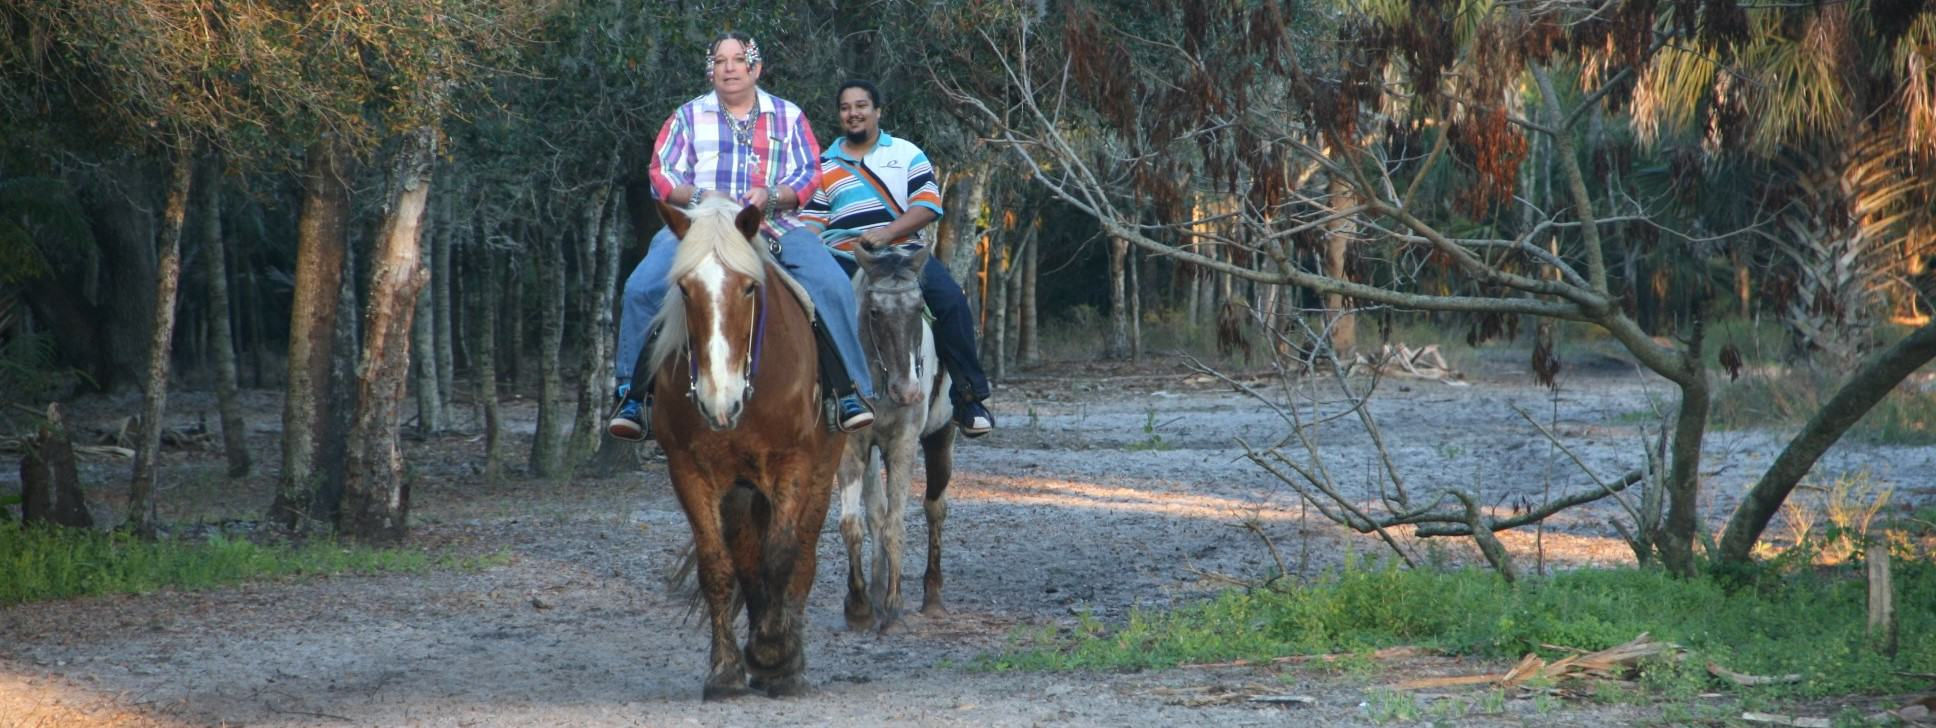 sun-city-stables-guided-ride